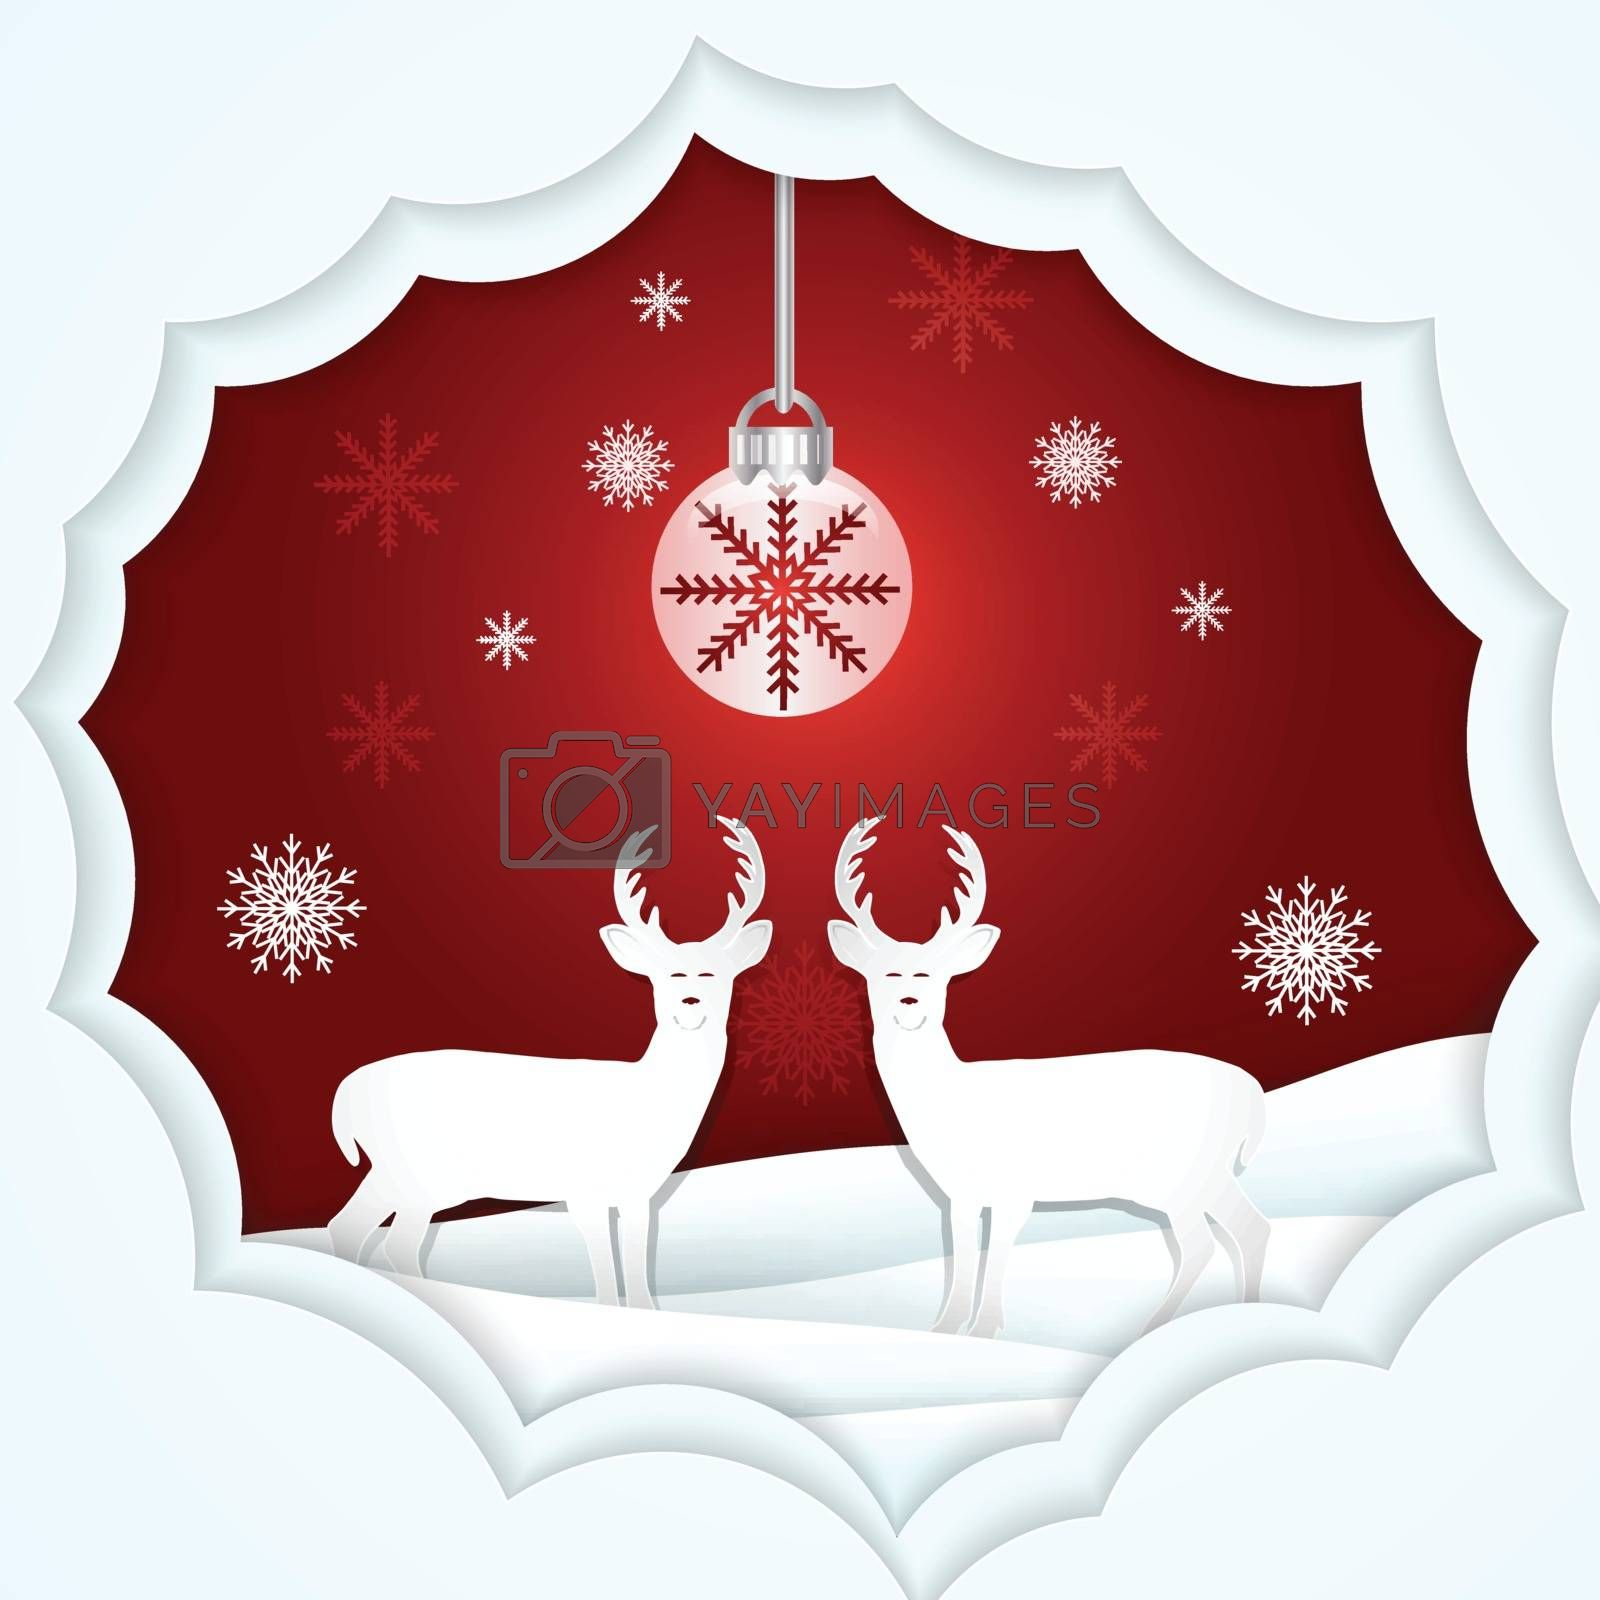 Paper art illustration of Deer and snowflake, Christmas season red background paper cut style